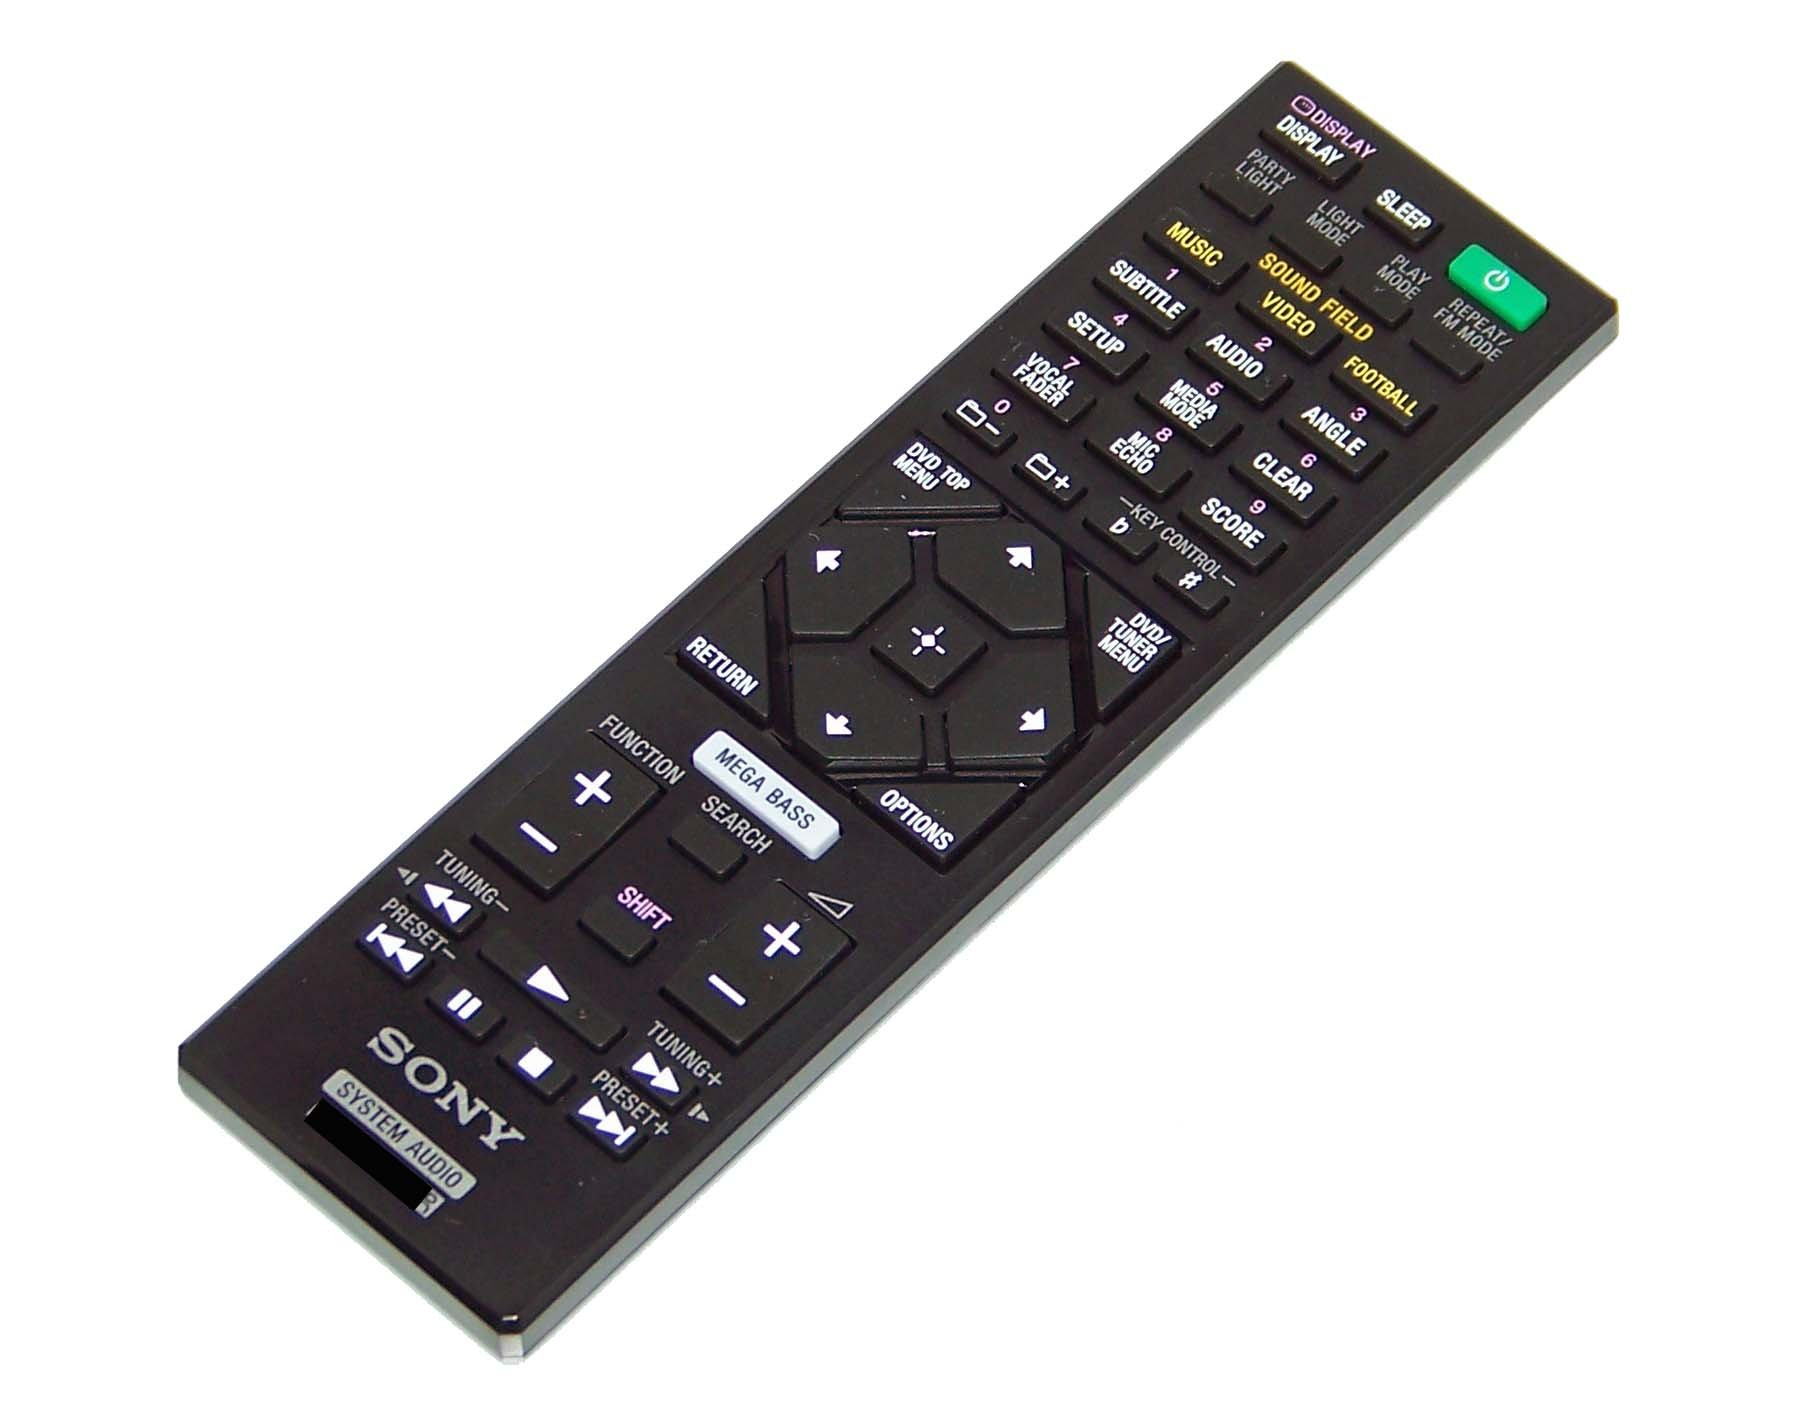 OEM Sony Remote Control Originally Shipped With: HCDSHAKEX10, HCD-SHAKEX10, HCD SHAKEX10